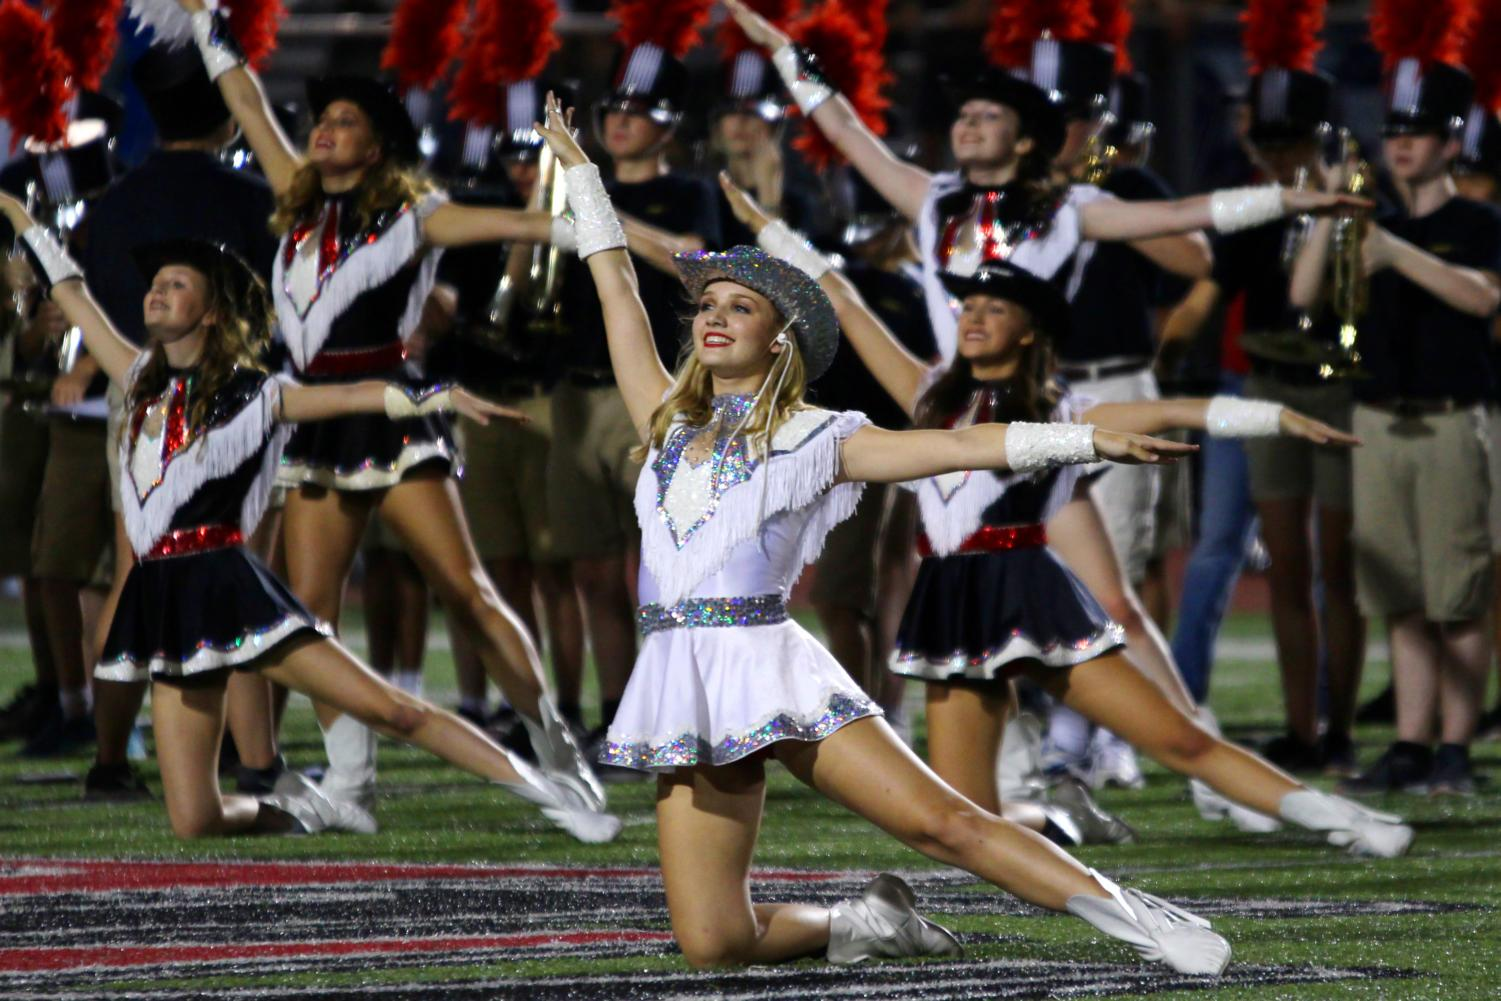 Senior Majestic Major Alyssa Whitmore performs during halftime of the home football game versus Royce City.